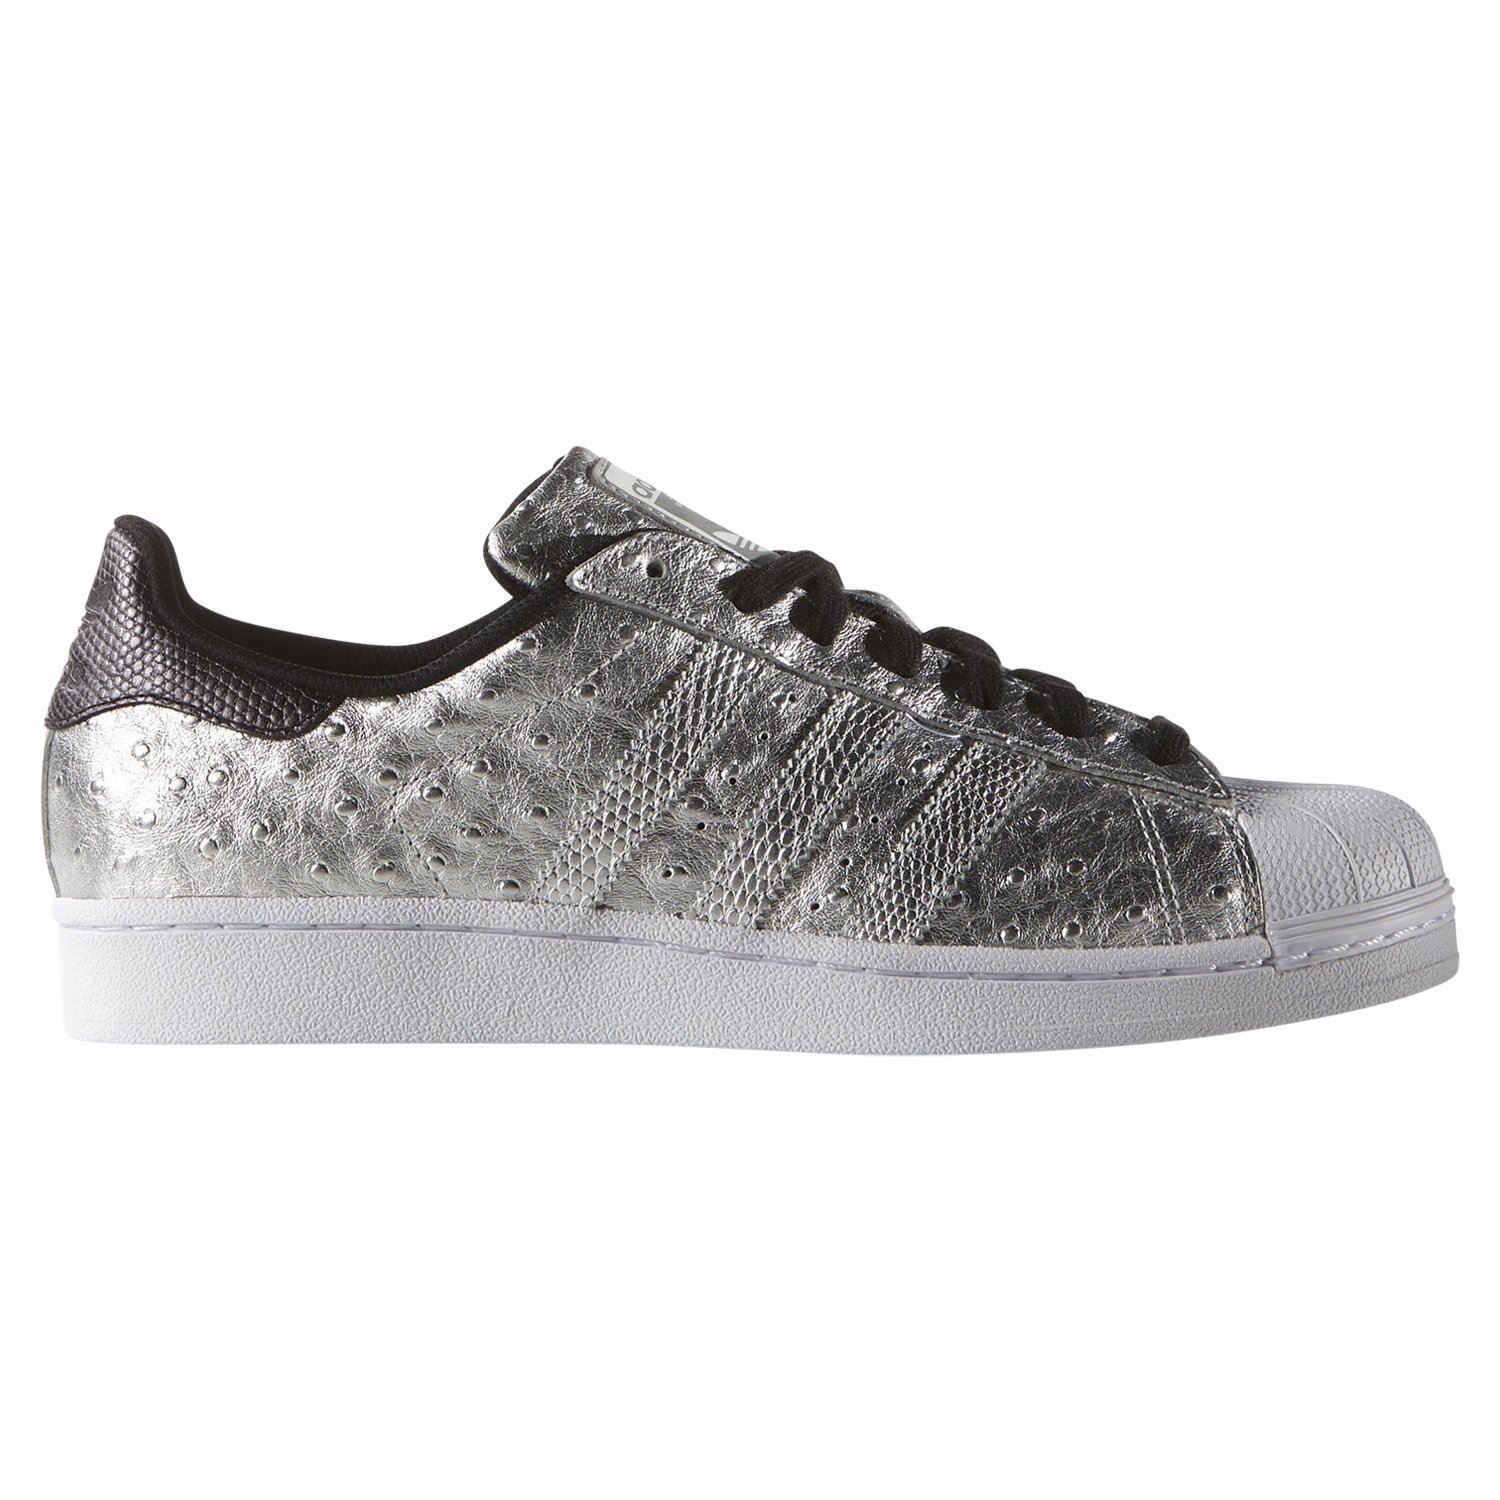 best sneakers af4ab a6096 Details about adidas ORIGINALS MEN'S SUPERSTAR TRAINERS SILVER SHOES  SNEAKERS RARE SNAKESKIN